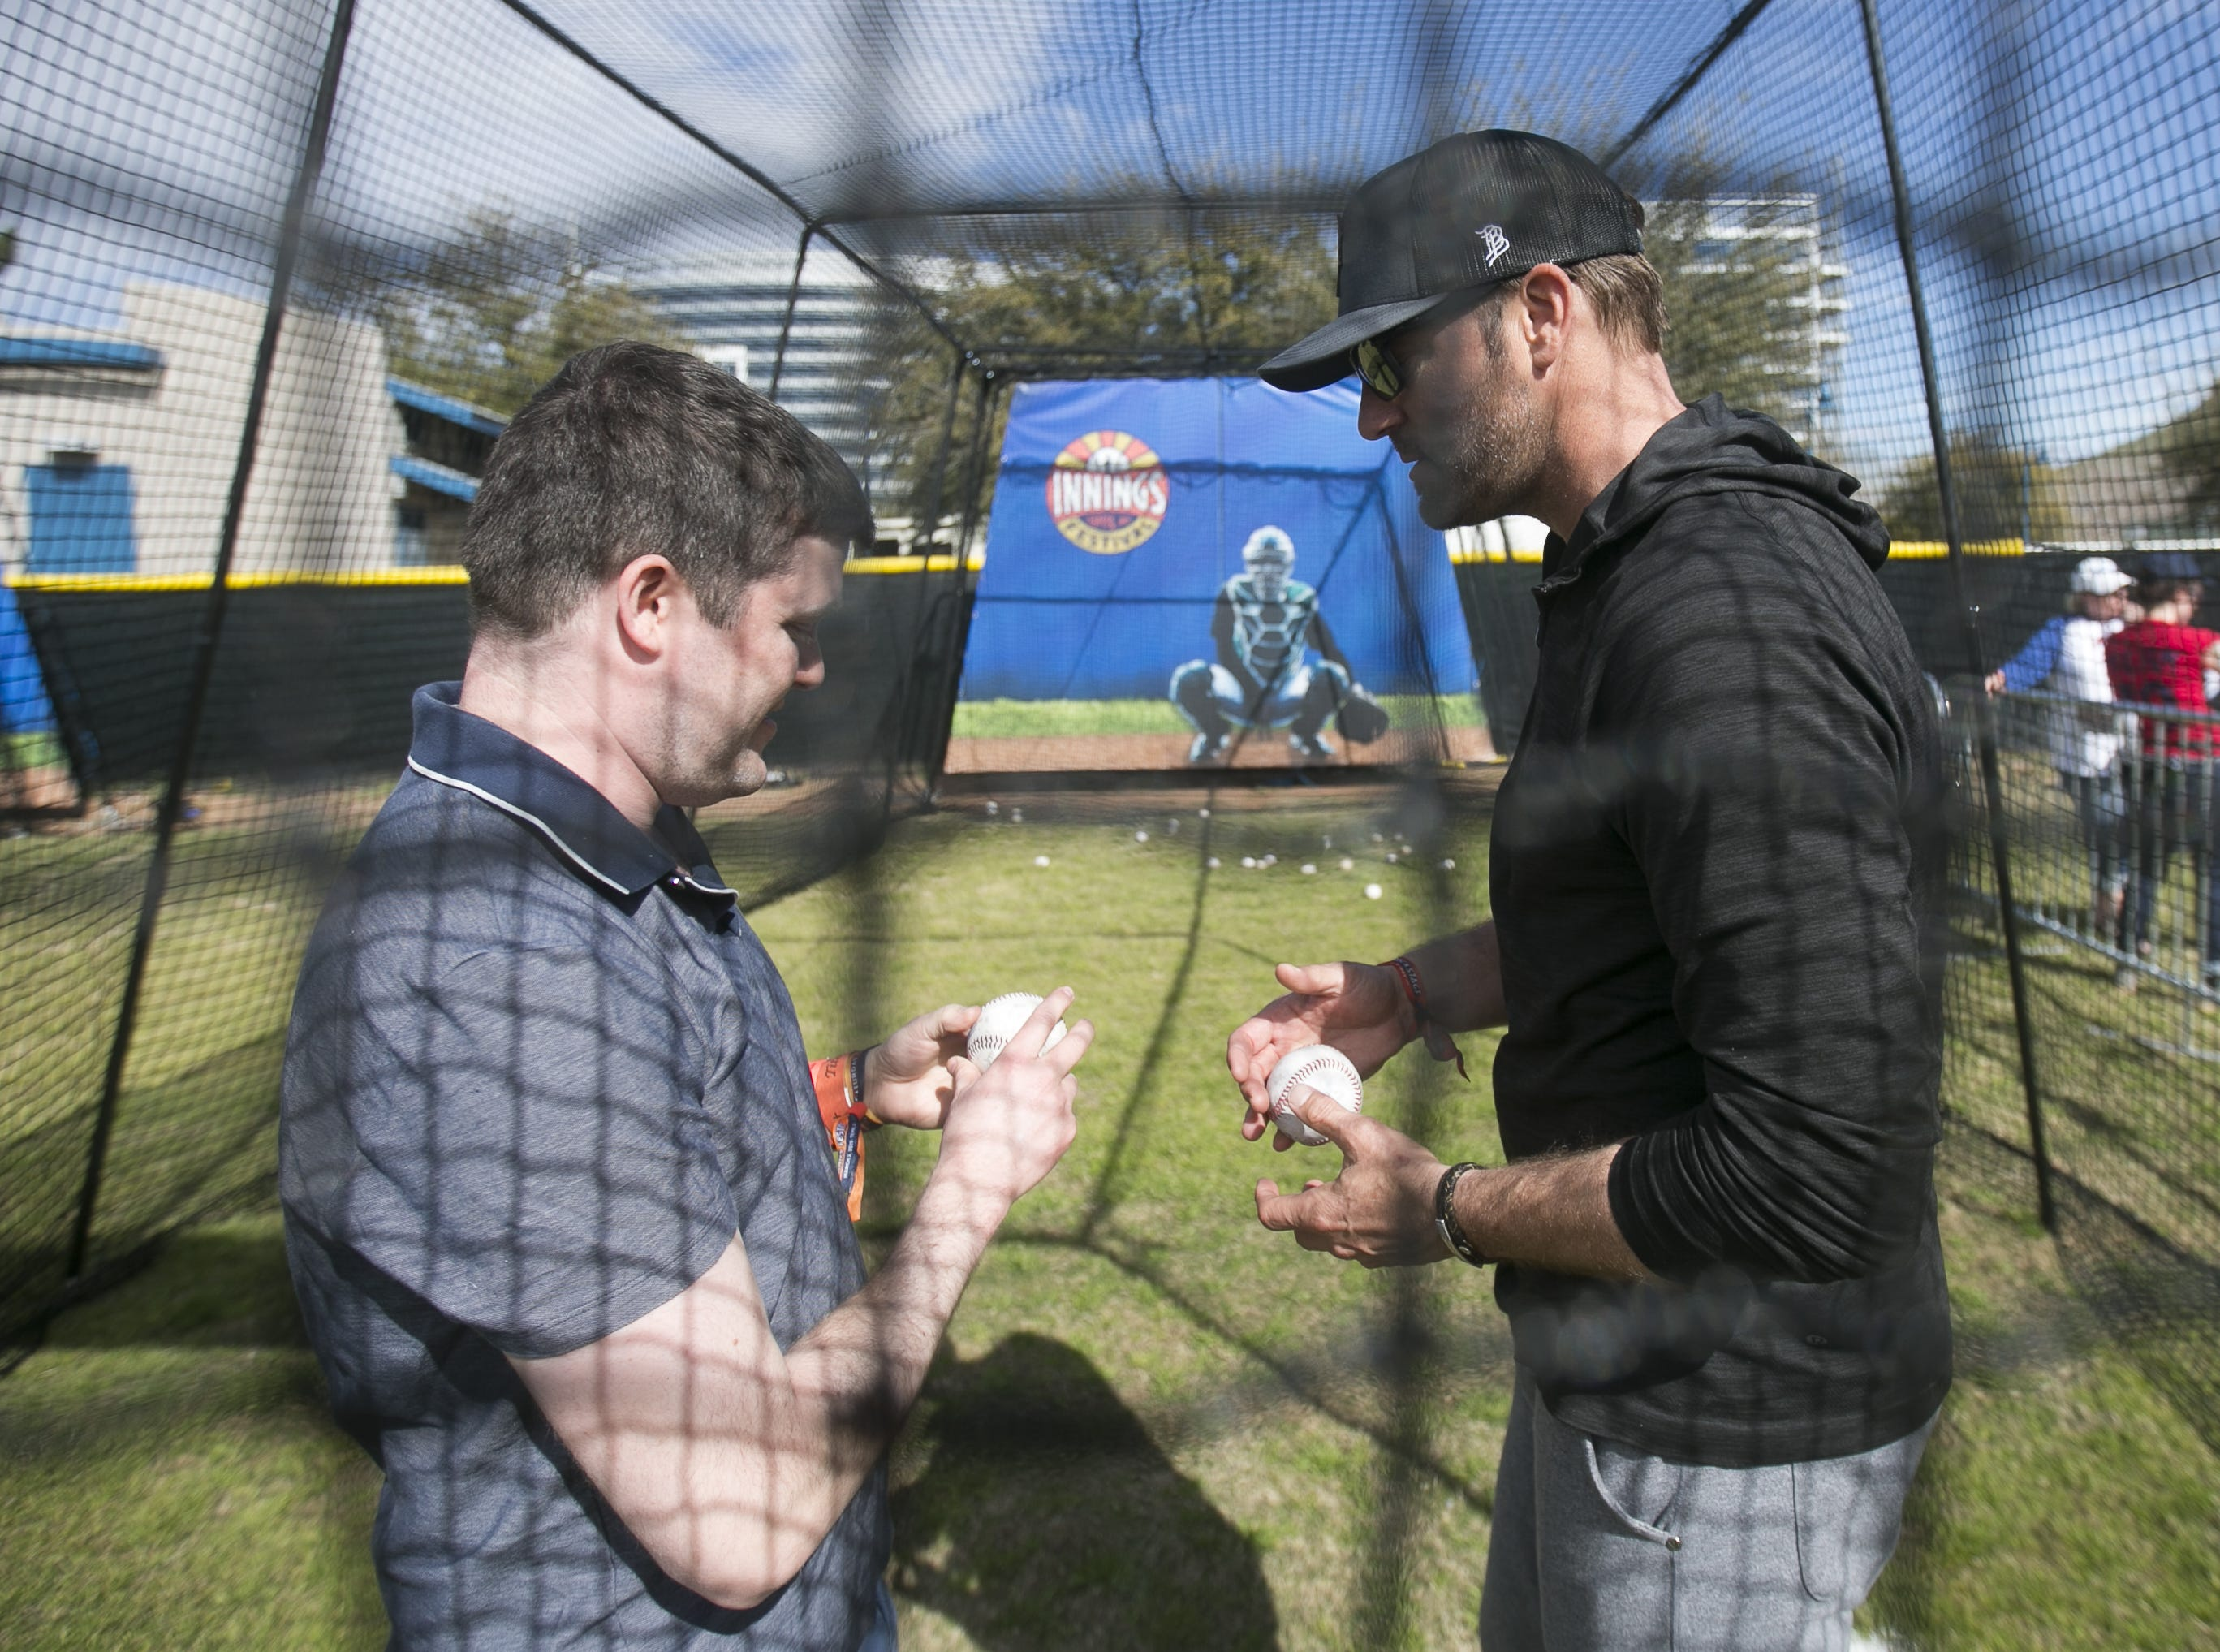 Former MLB pitcher Shawn Estes (right) shows Brian Wolther (left) pitching techniques at the Innings Festival at Tempe Beach Park on Saturday, March 2, 2019.